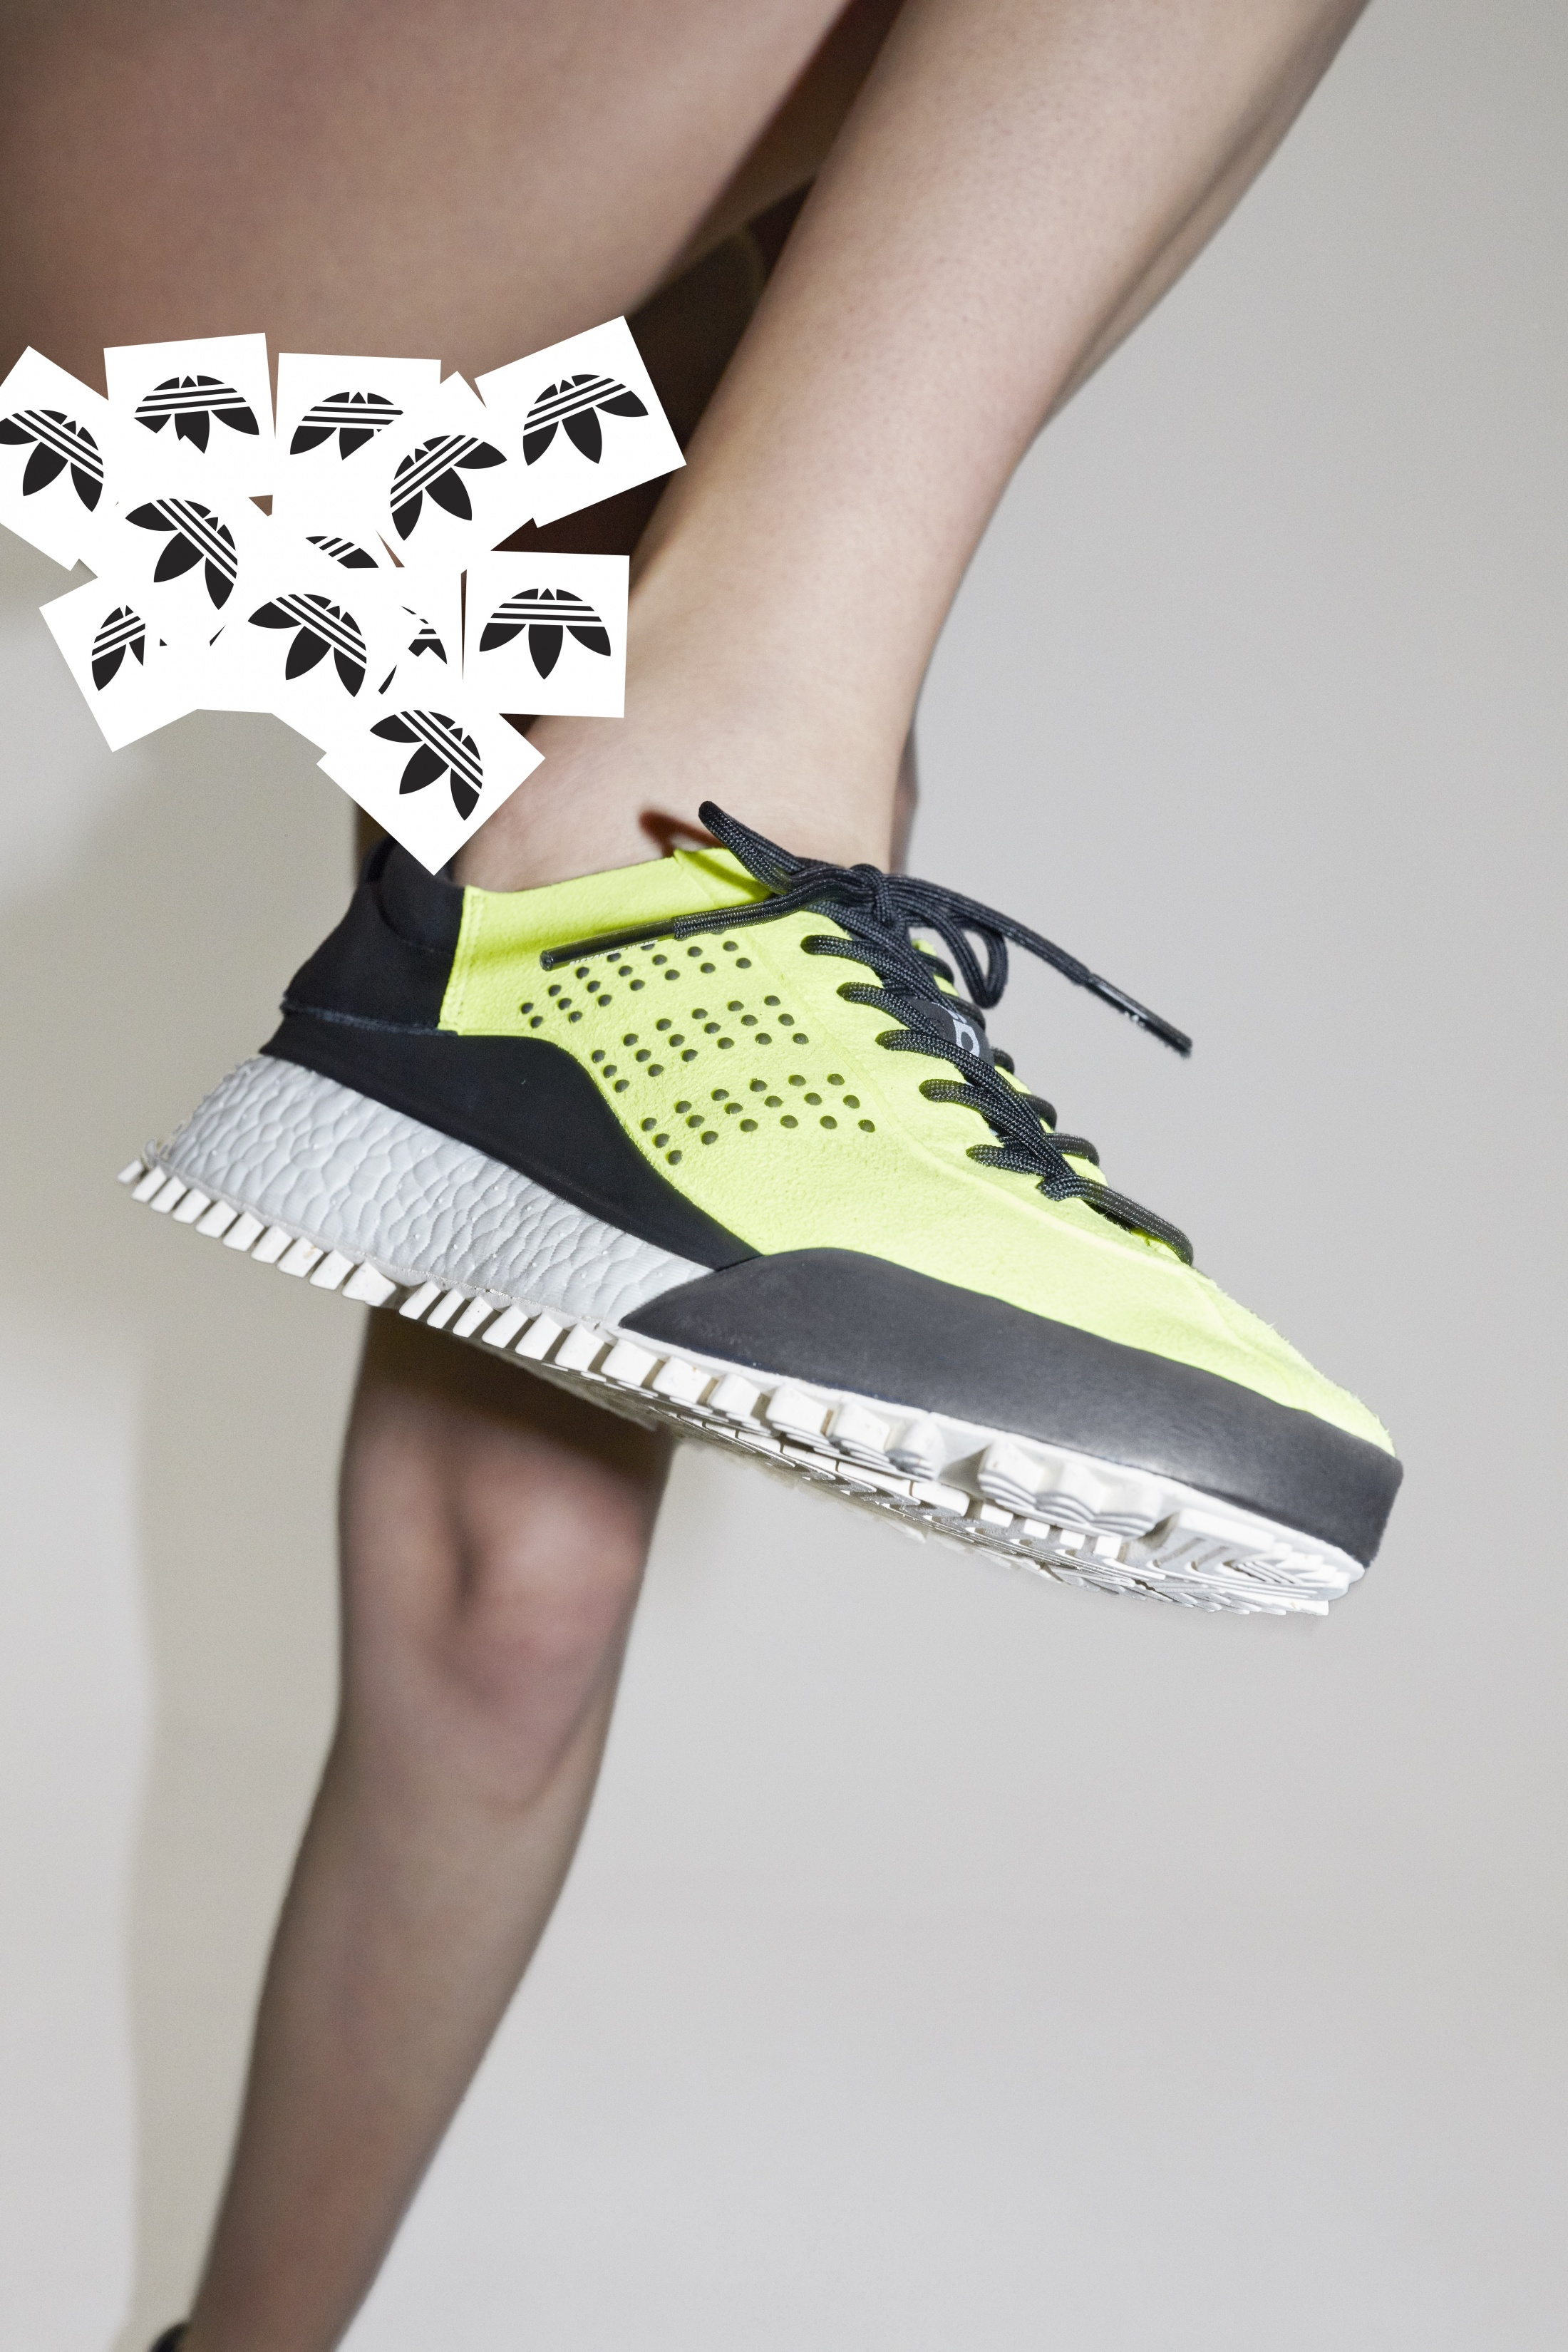 Image Media for adidas Originals x Alexander Wang S2